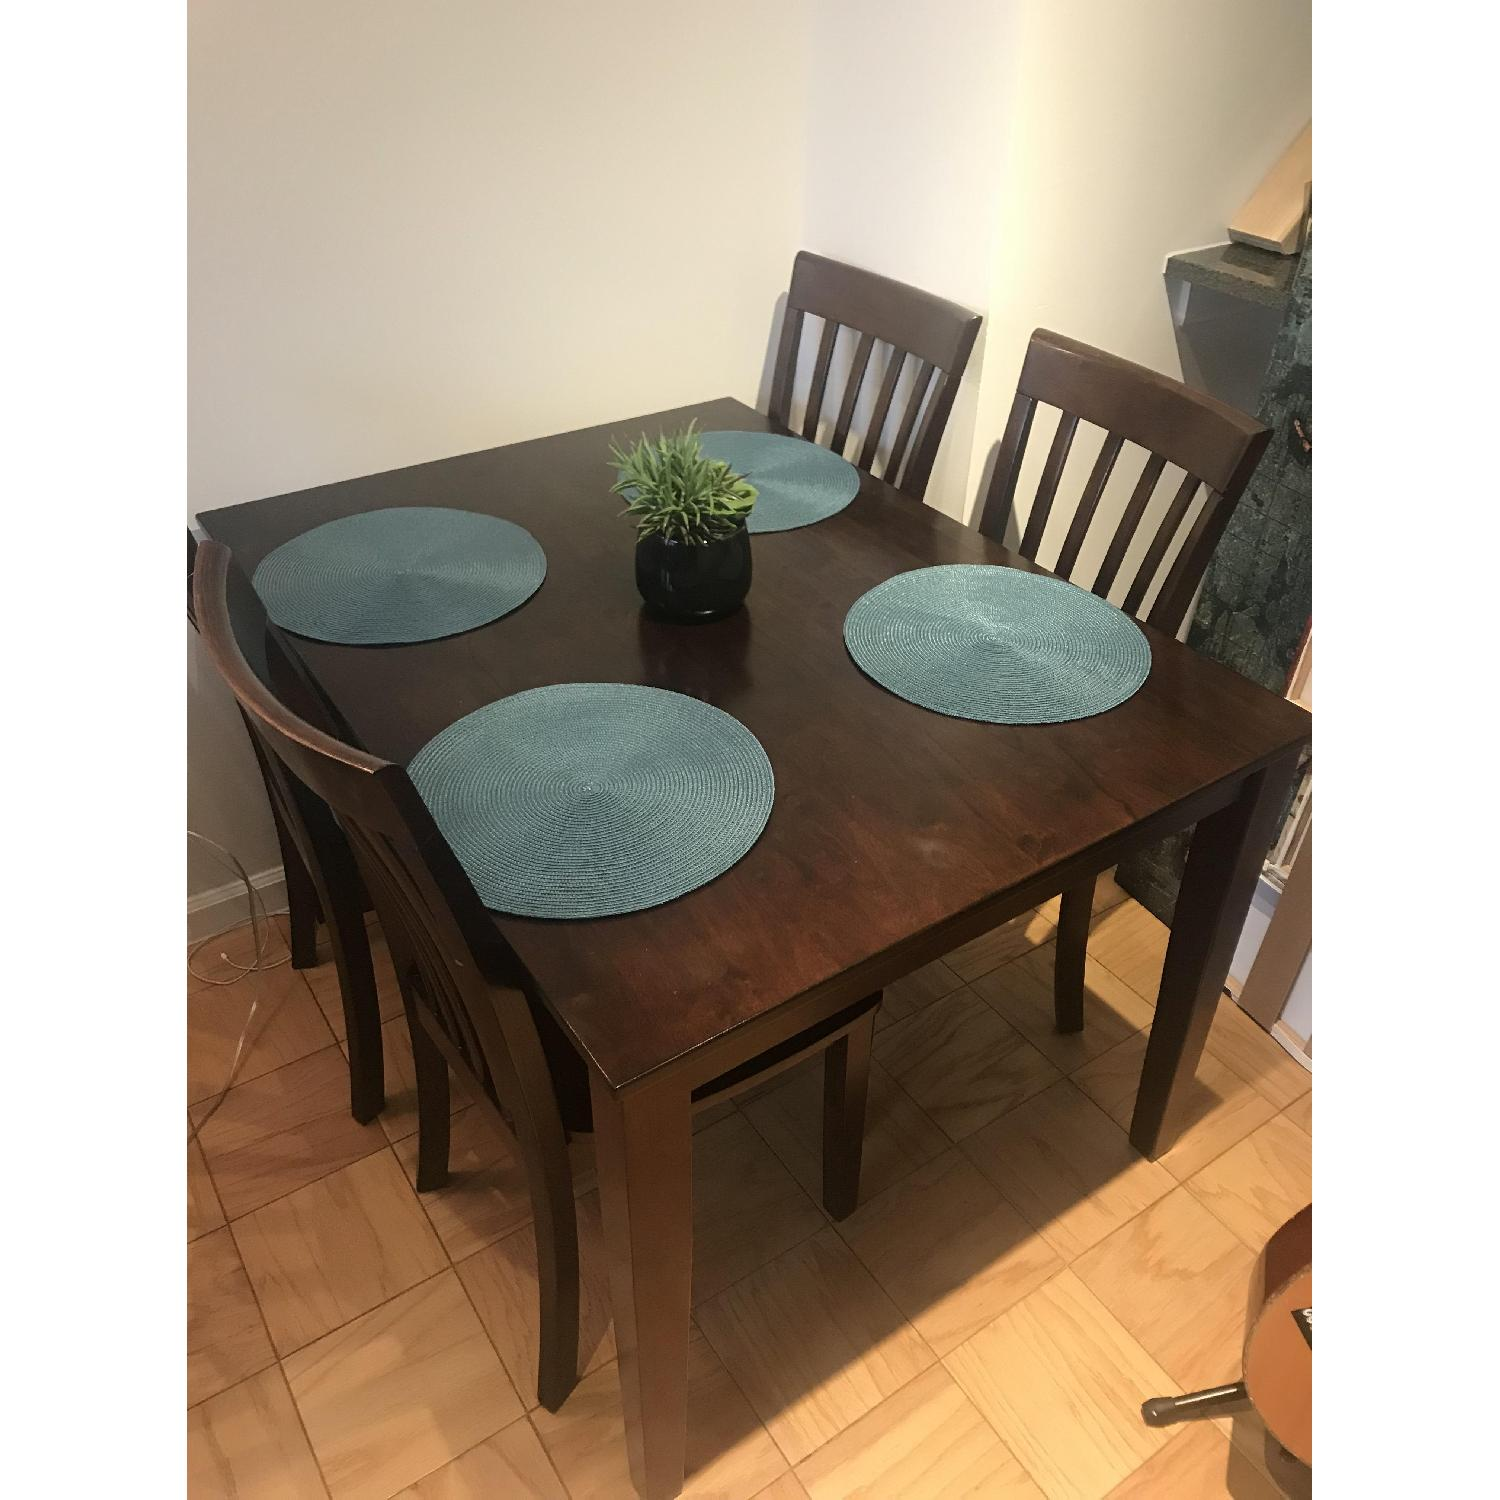 ... Ashley Wooden Dining Table W/ 4 Chairs 0 ...